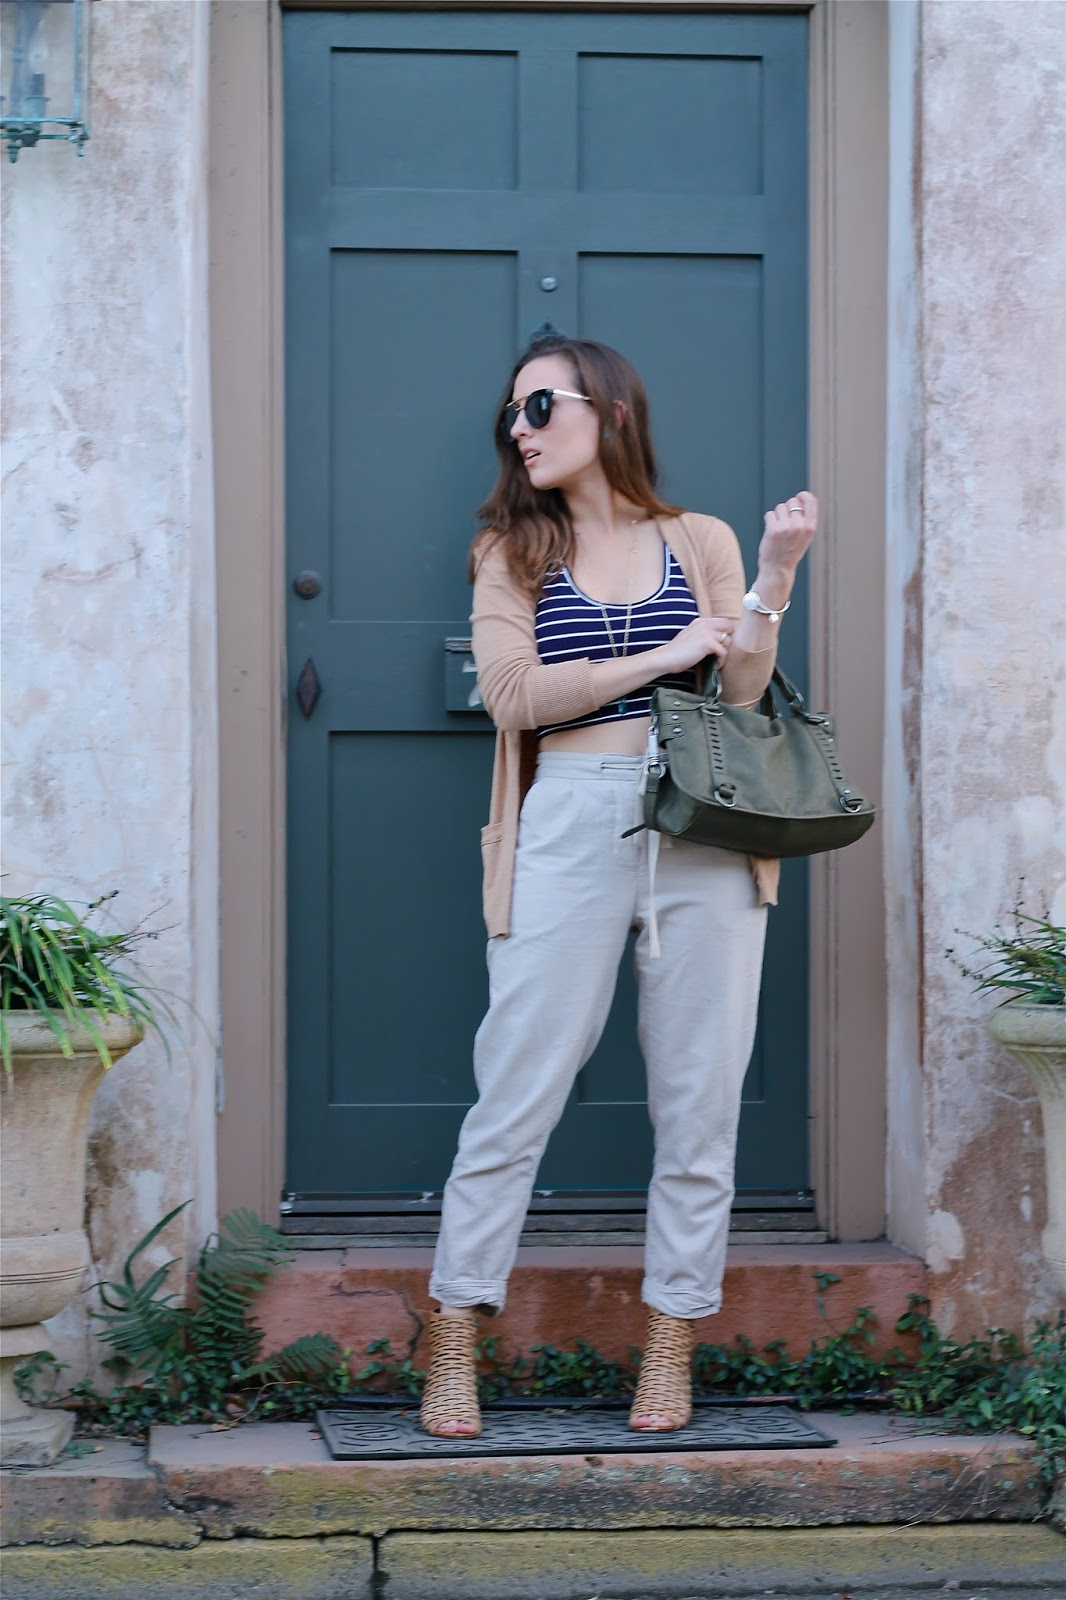 Forever 21, jeffrey campbell, LOFT, Free People, Nasty Gal, The HiRode, Alex and Ani, Kate Spade, style blog, fashion blogger, Miami fashion blogger, outfit ideas, nautical, ootd, look book,